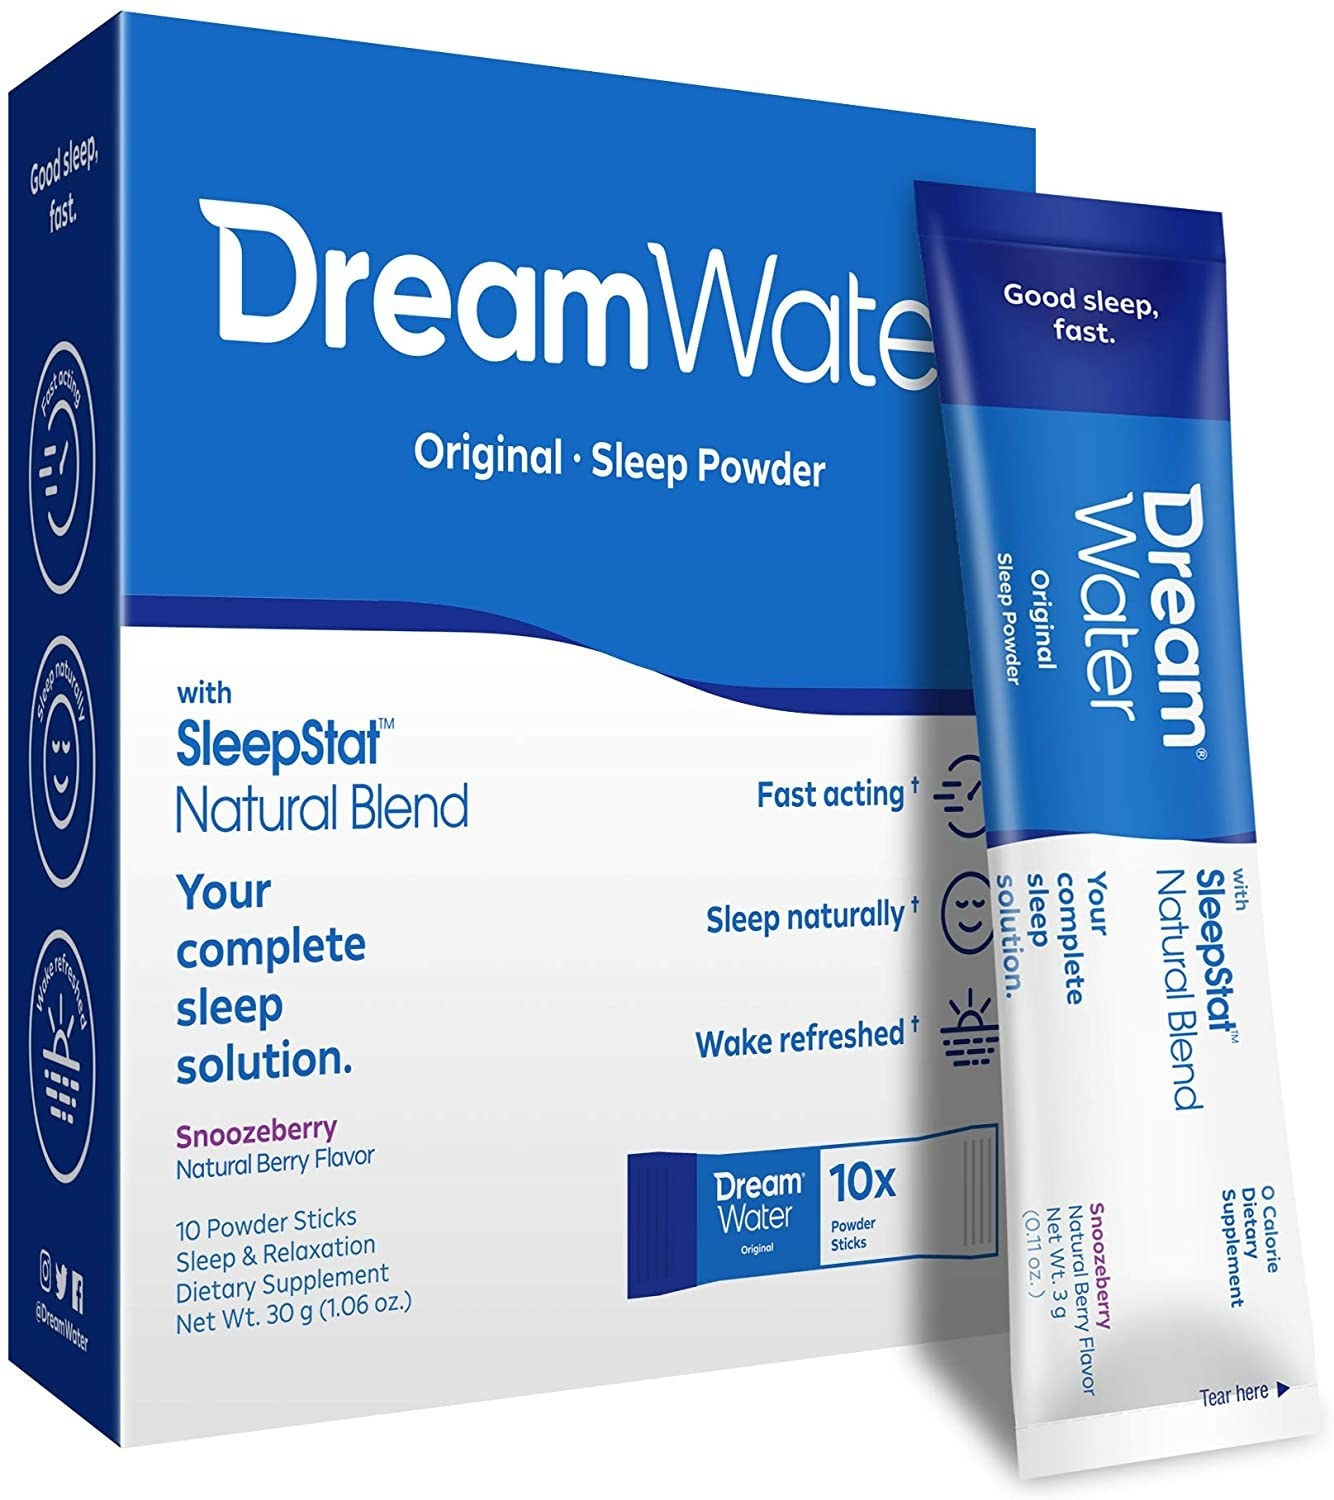 A box of the Dream Water